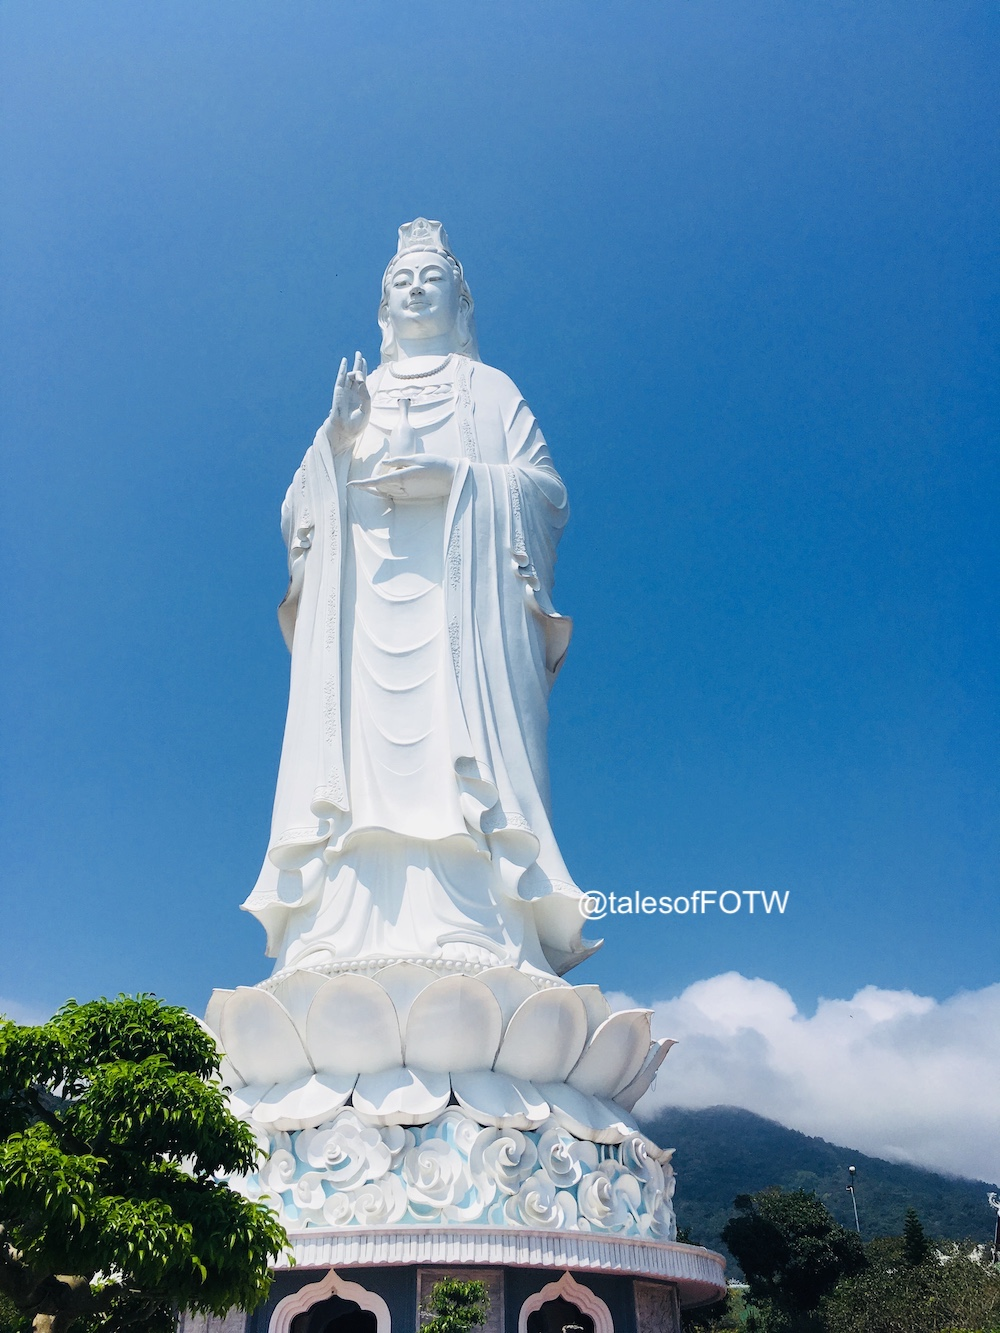 Looking to visit Vietnam or have a 24 hour hault at Da Nang? Then you're in one of the most beautiful place with pristine beaches #vietnam #DaNang #beaches #travel #Ladybuddha